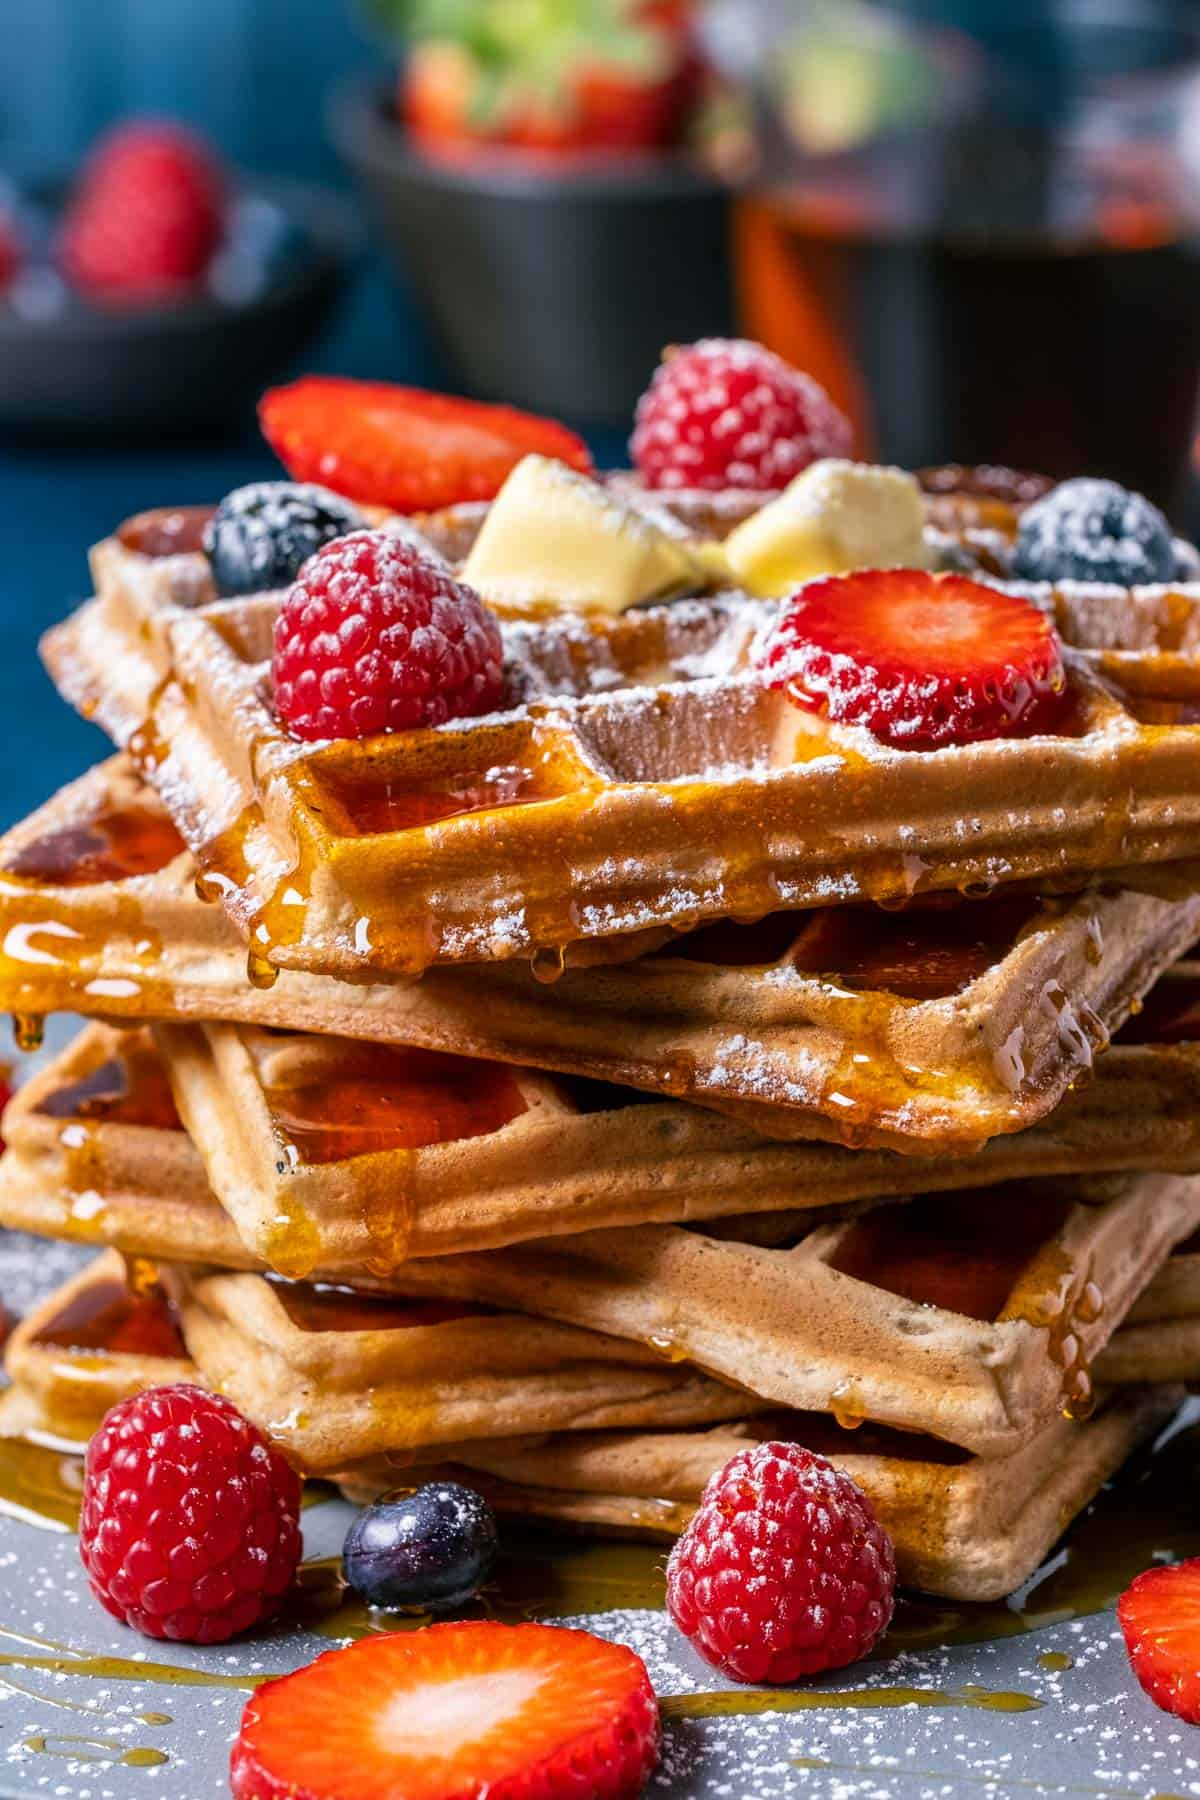 Vegan waffles in a stack topped with vegan butter, powdered sugar and fresh berries.